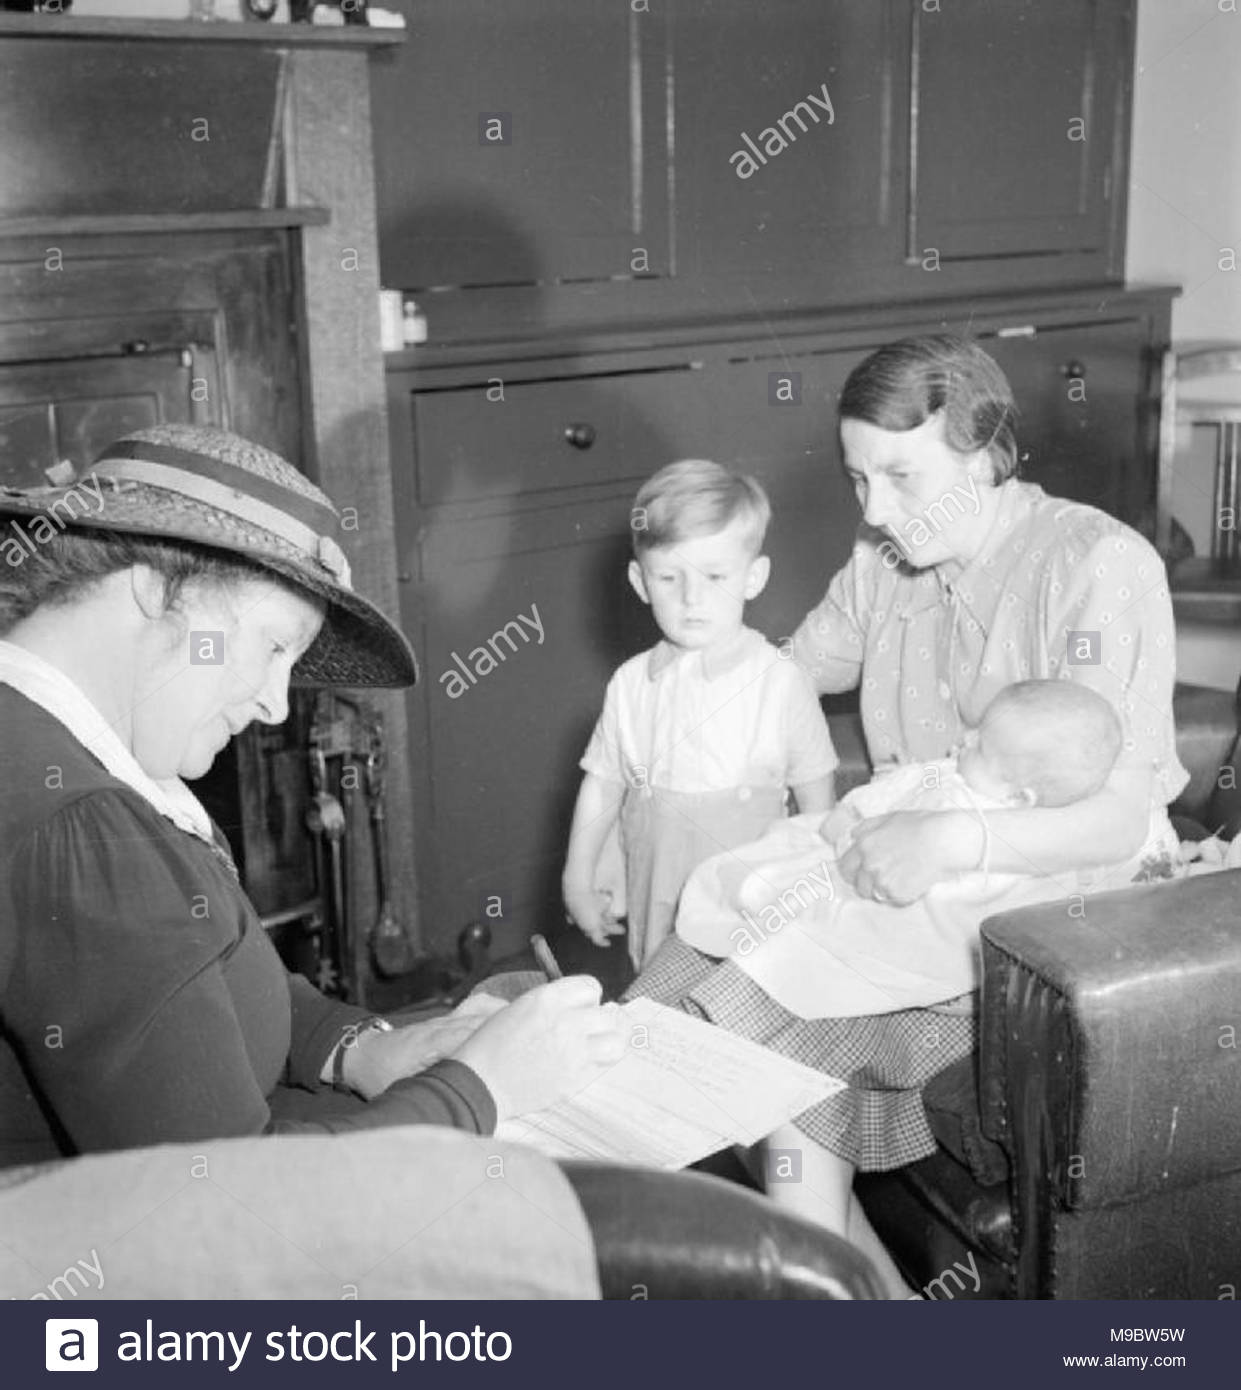 Local Government in a Country Town- Everyday Life in Wotton-under-edge, Gloucestershire, England, UK, 1944 Health Visitor Miss Sumption Jones (left) calls on Mrs C S Hayward and her two children, Timothy (aged 2 and a half) and Miriam (aged 4 months) at their home in Wotton-under-Edge in Gloucestershire. The original caption explains that the Health Visitor's visits begin when a child is 14 days old. - Stock Image